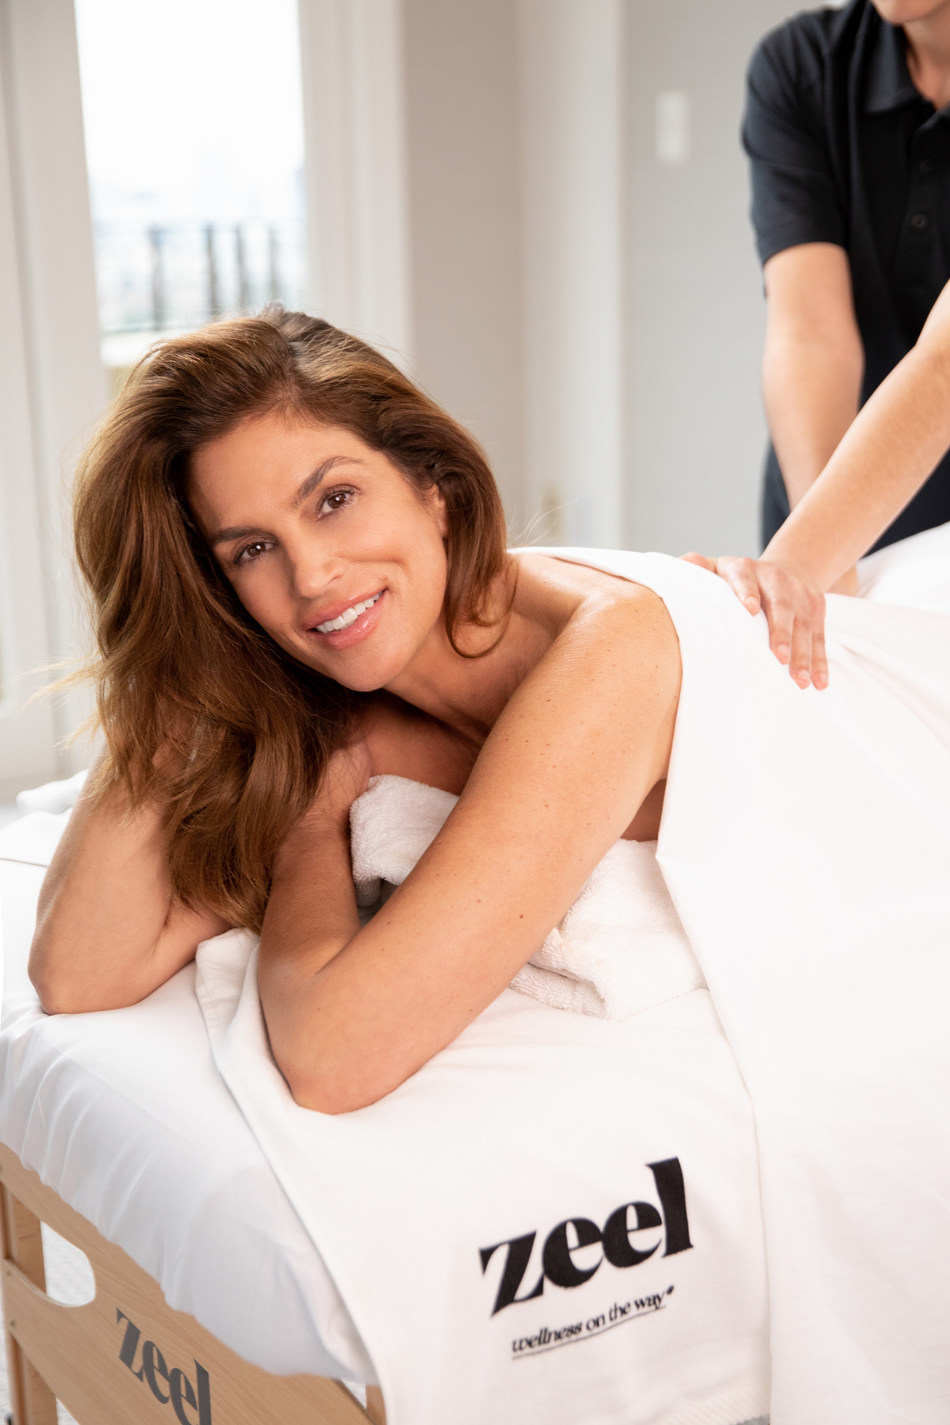 Cindy Crawford Says Zeel Is At The Heart Of A Perfect Valentine's Day